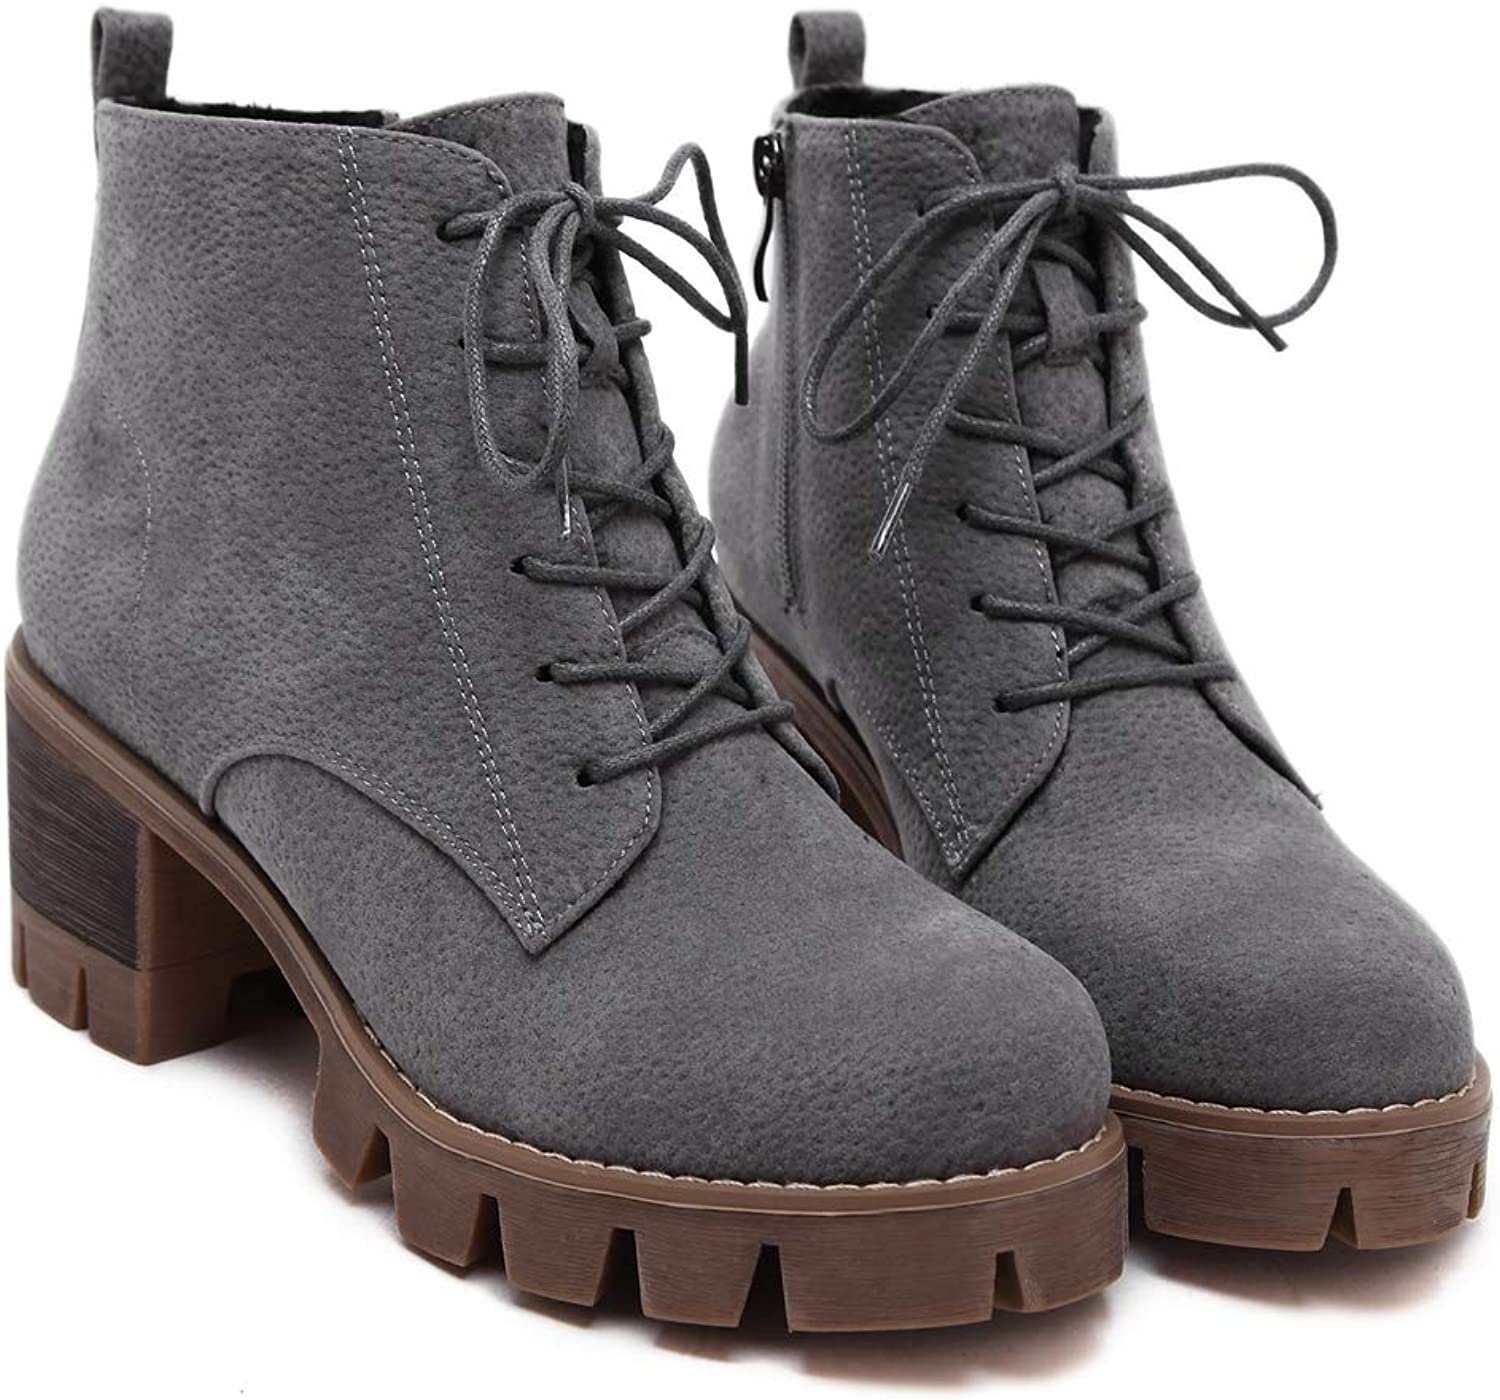 Sam Carle Women Boots, Solid color Lace Up and Zipper Round Toe Martin Ankle Boots